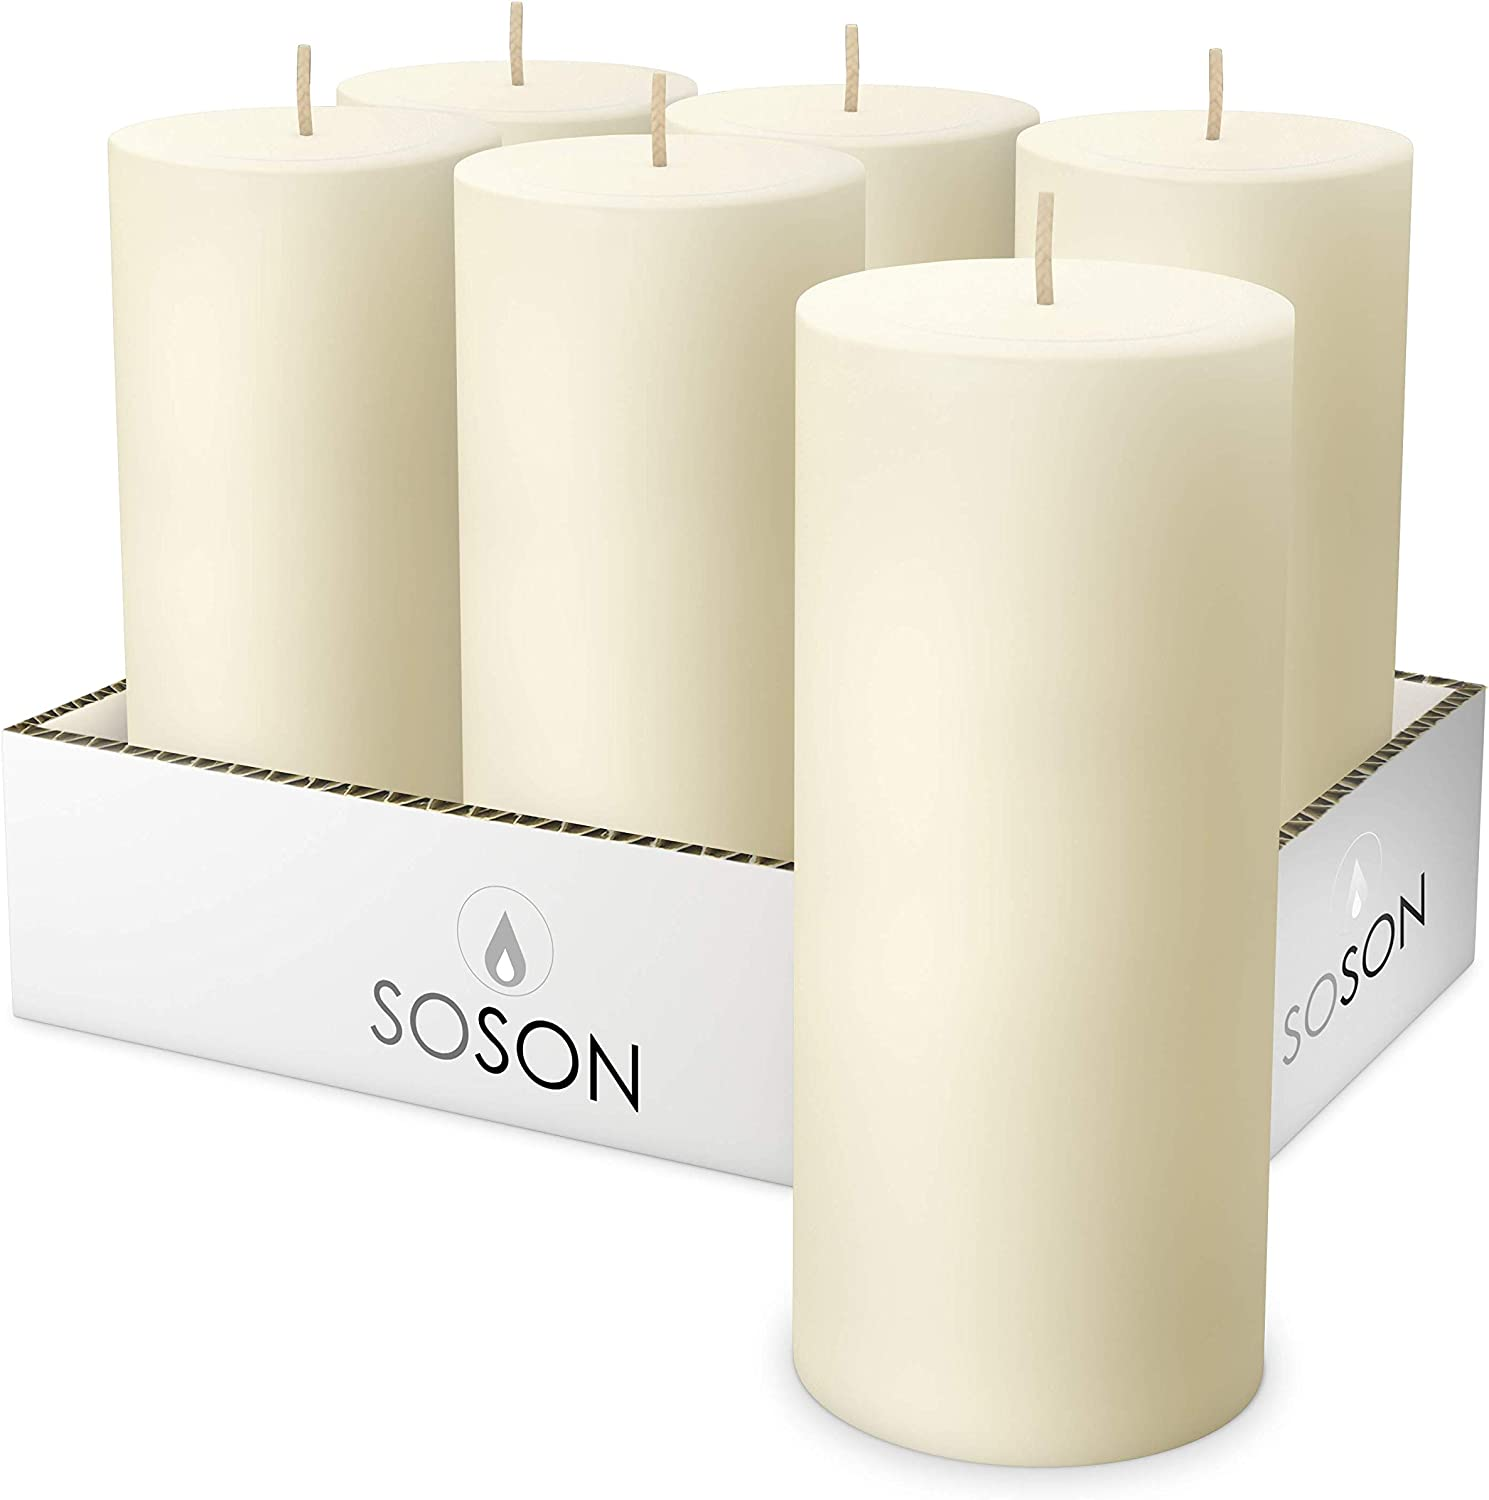 Simply Soson Smooth 3x6 Ivory Candles   Pillar Candles for Home   Unscented Candles & Dripless Pillar Candles   Long Lasting Candles   Large Candle for Home   6 Pack of Candles: Home Improvement